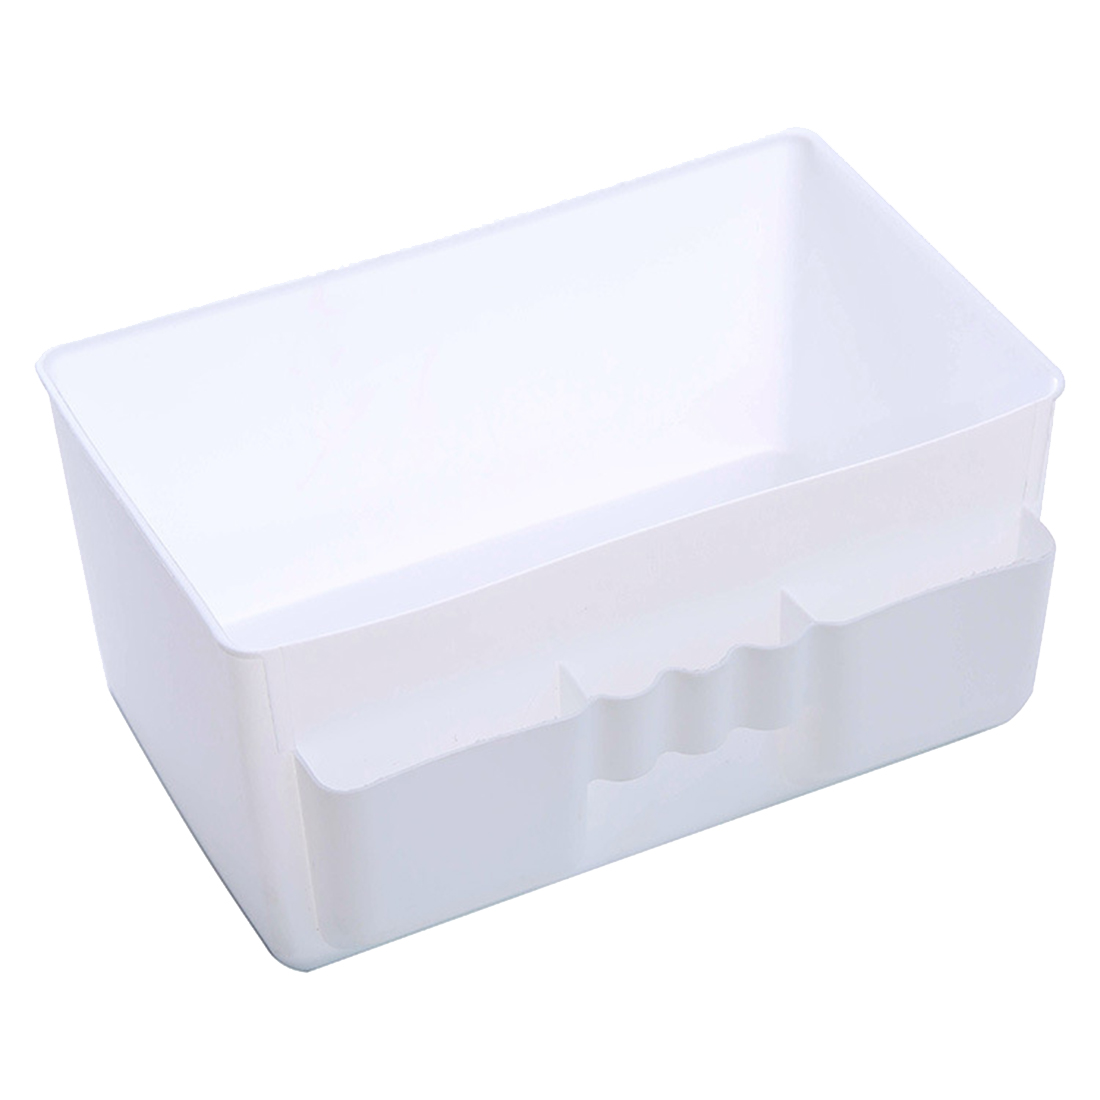 Best Hot Sale Cute Plastic Office Desktop Storage Boxes Makeup Organizer Storage Box #69829(white)